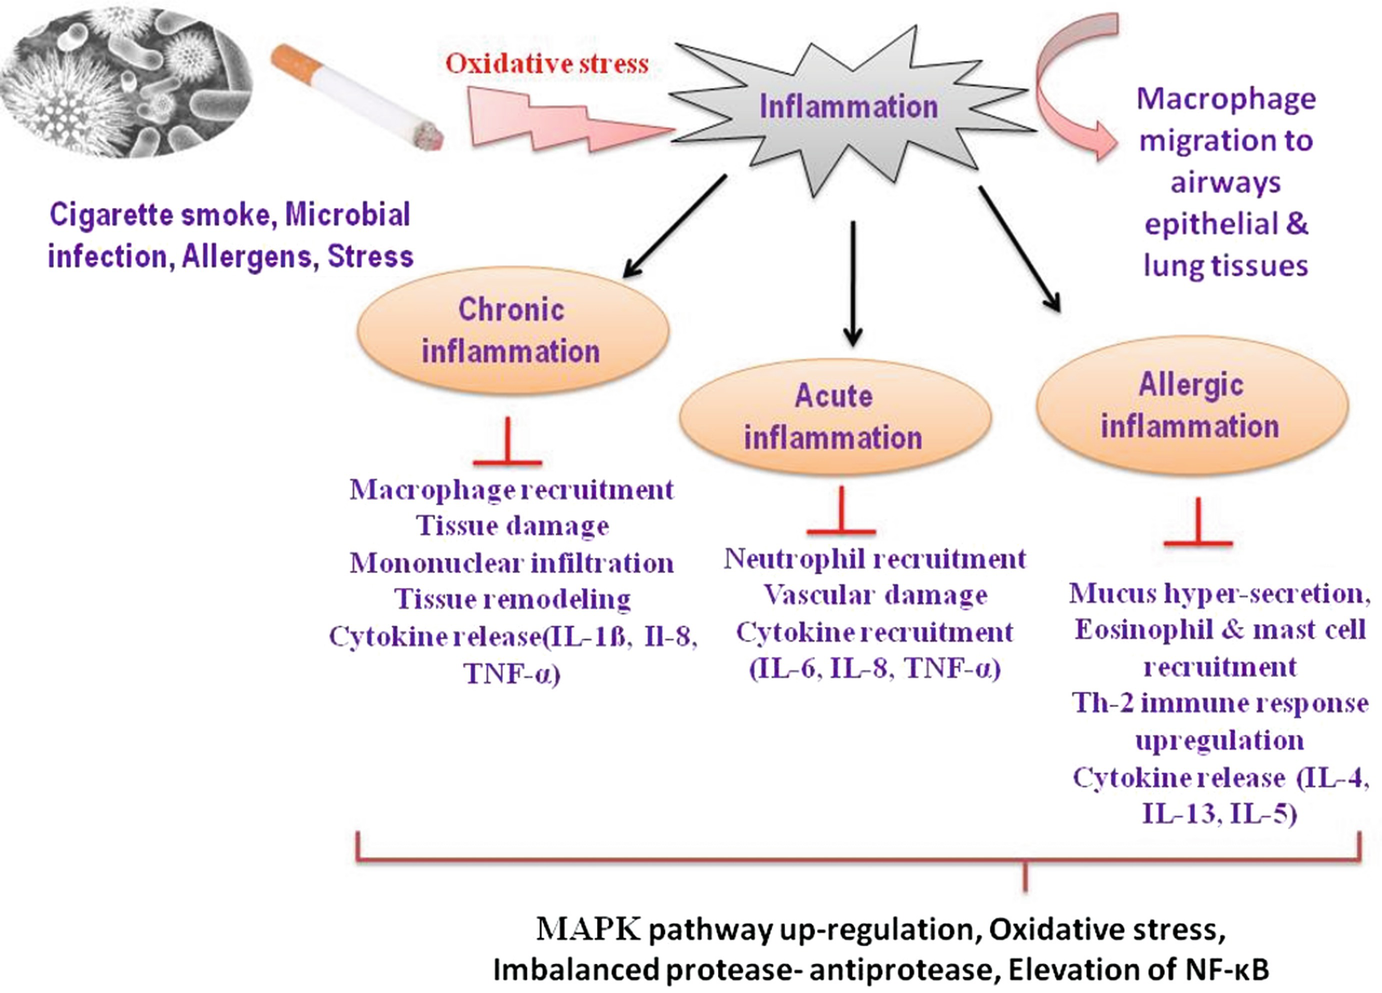 Phytotherapy in Inflammatory Lung Diseases: An Emerging